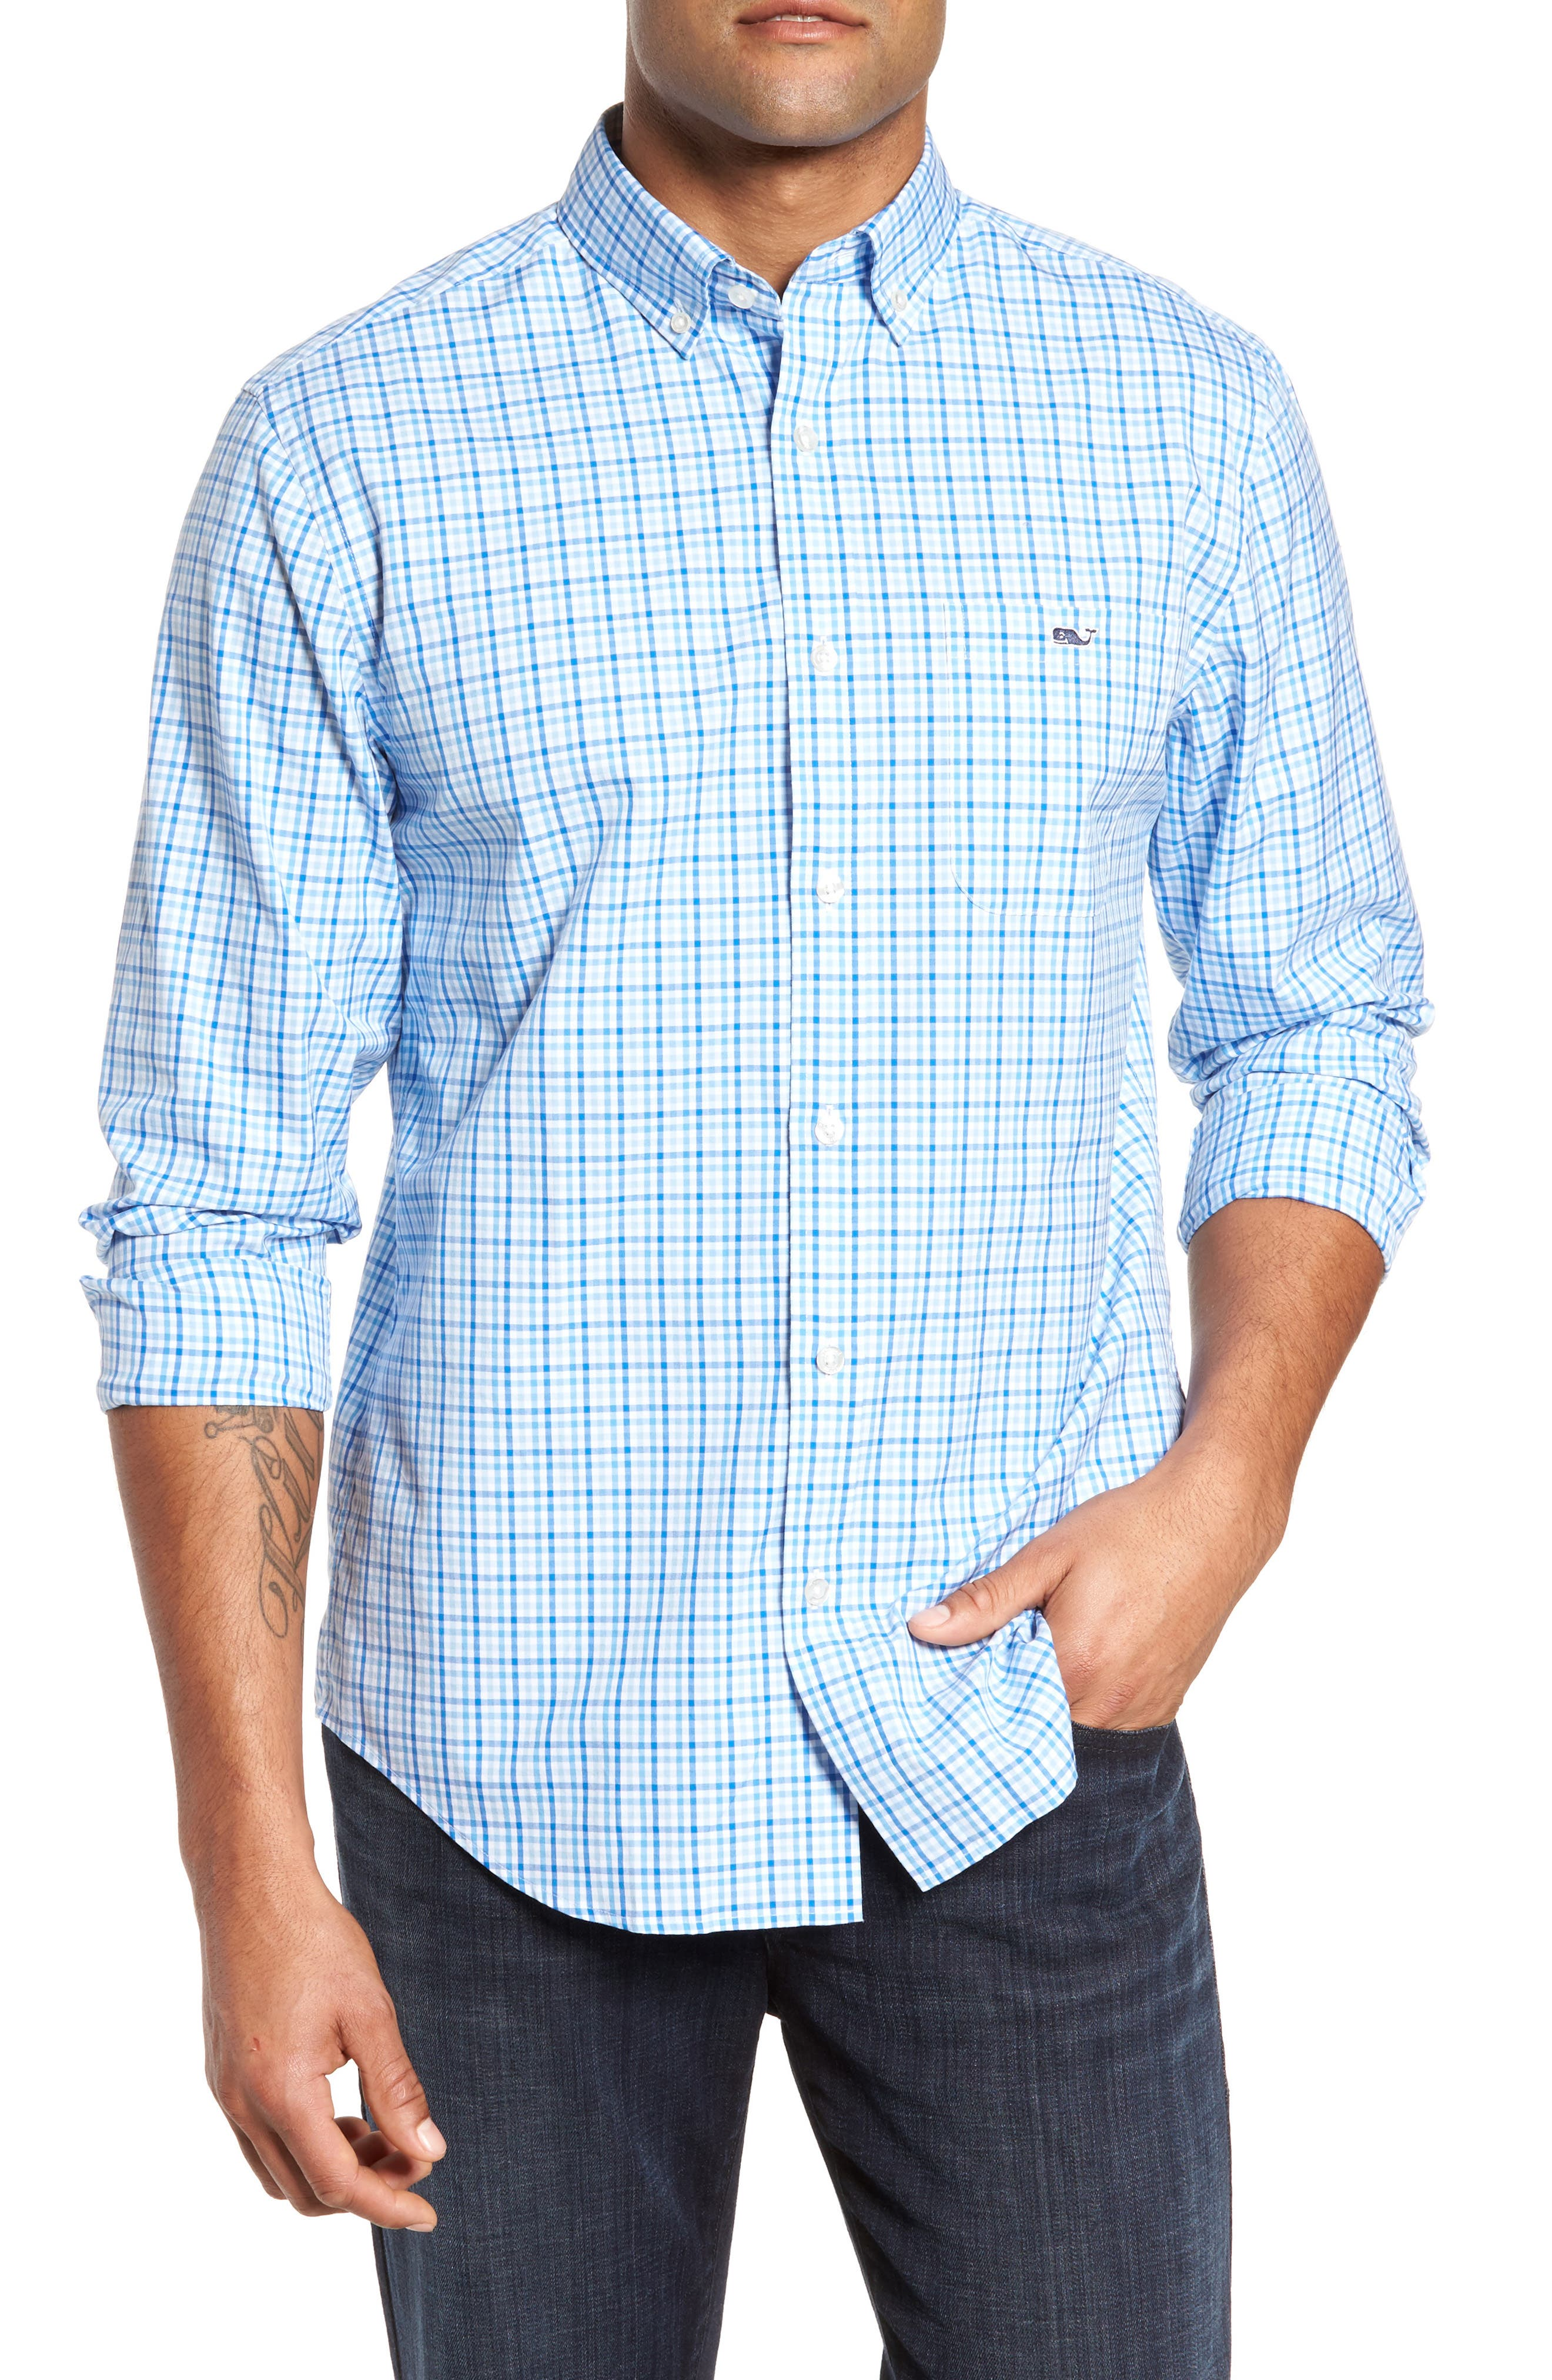 Main Image - vineyard vines Munroe Tucker Classic Fit Gingham Sport Shirt